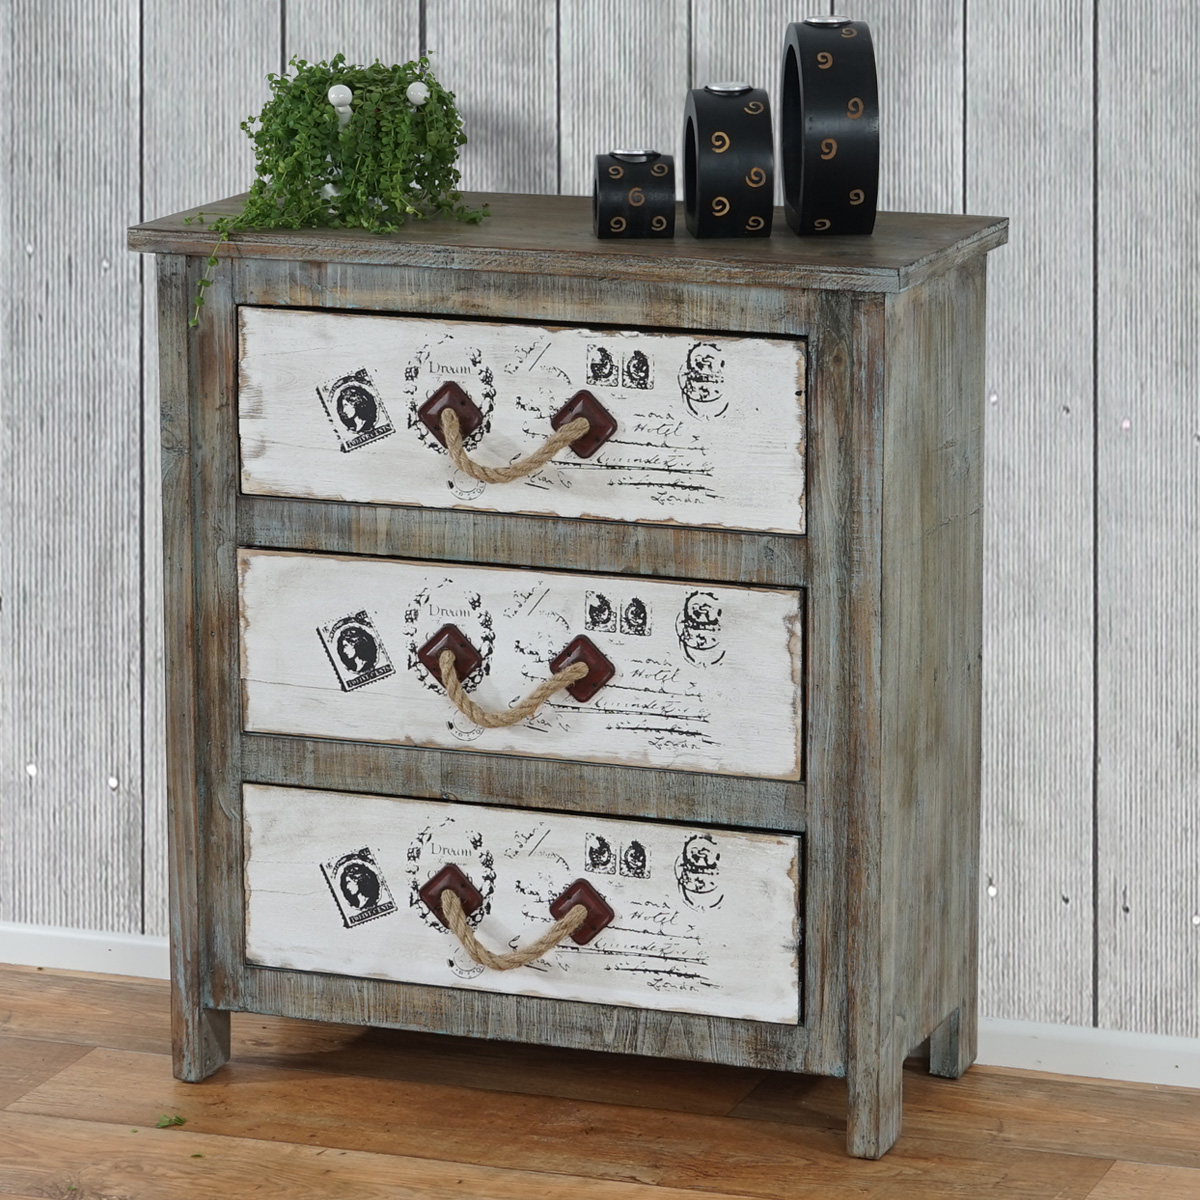 kommode porto schubladenkommode telefontisch schrank shabby look vintage. Black Bedroom Furniture Sets. Home Design Ideas